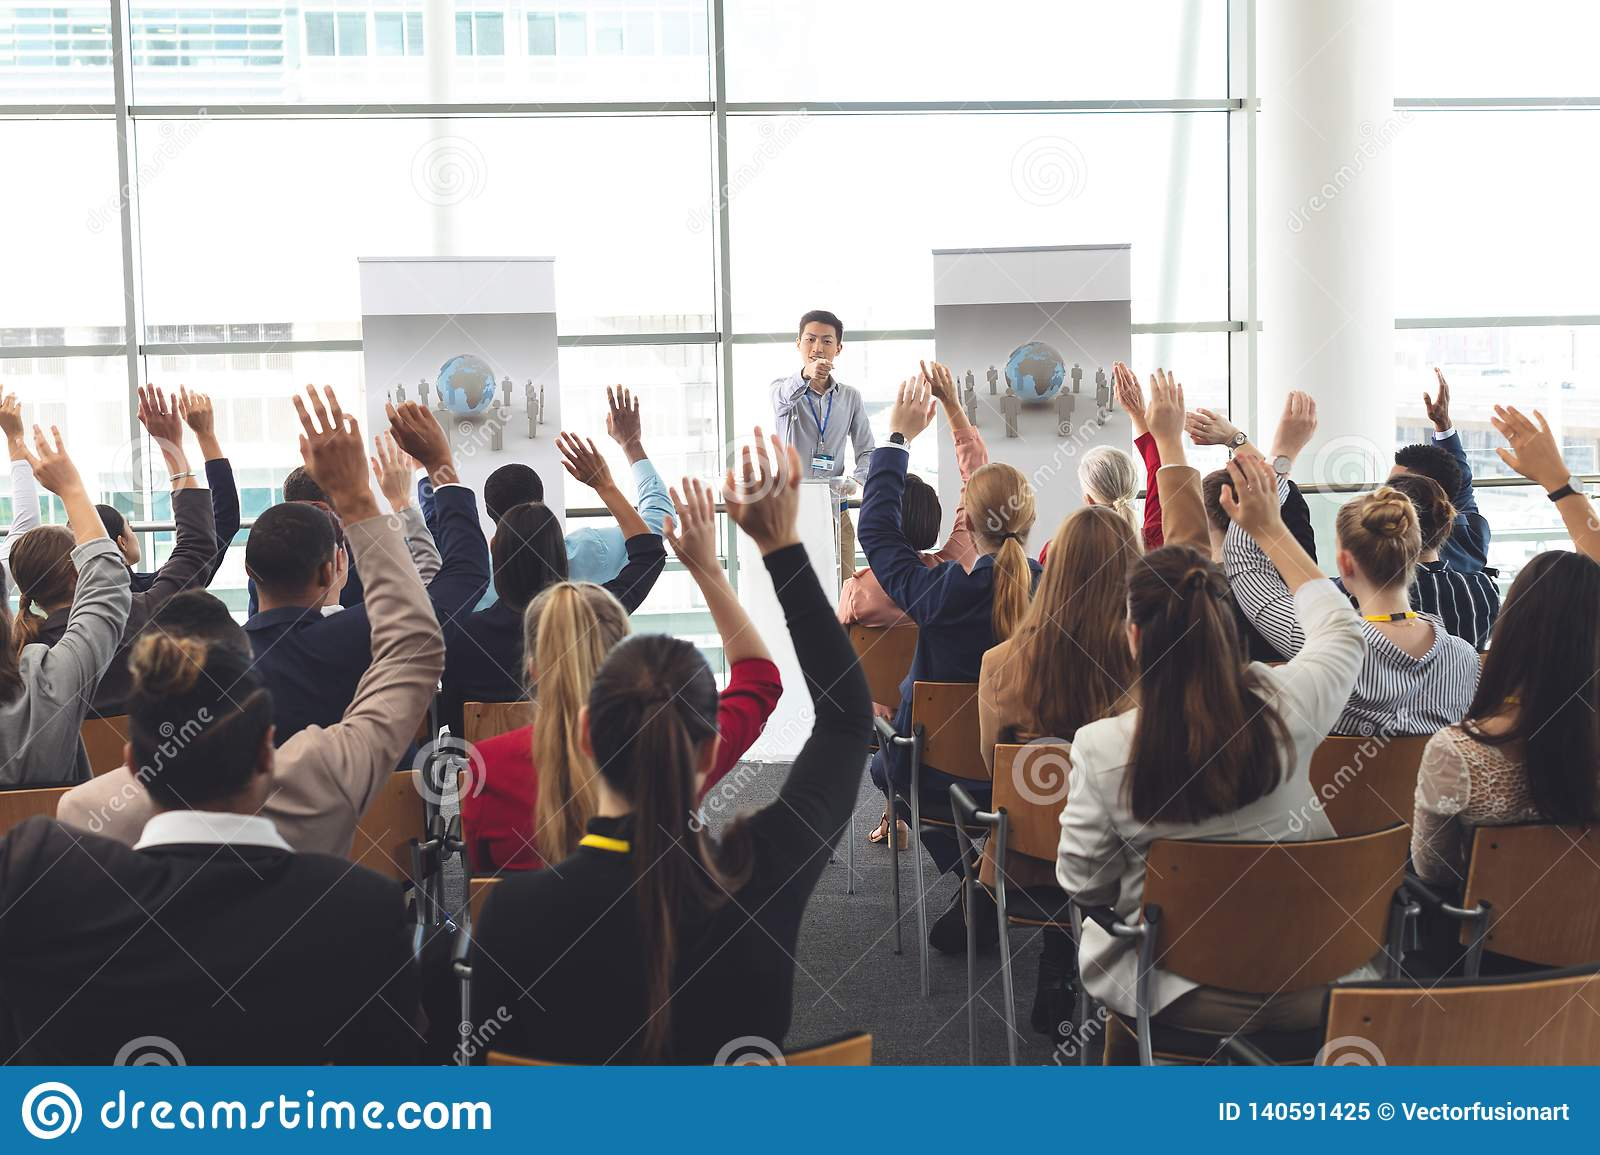 Business professionals raising hands in a business seminar